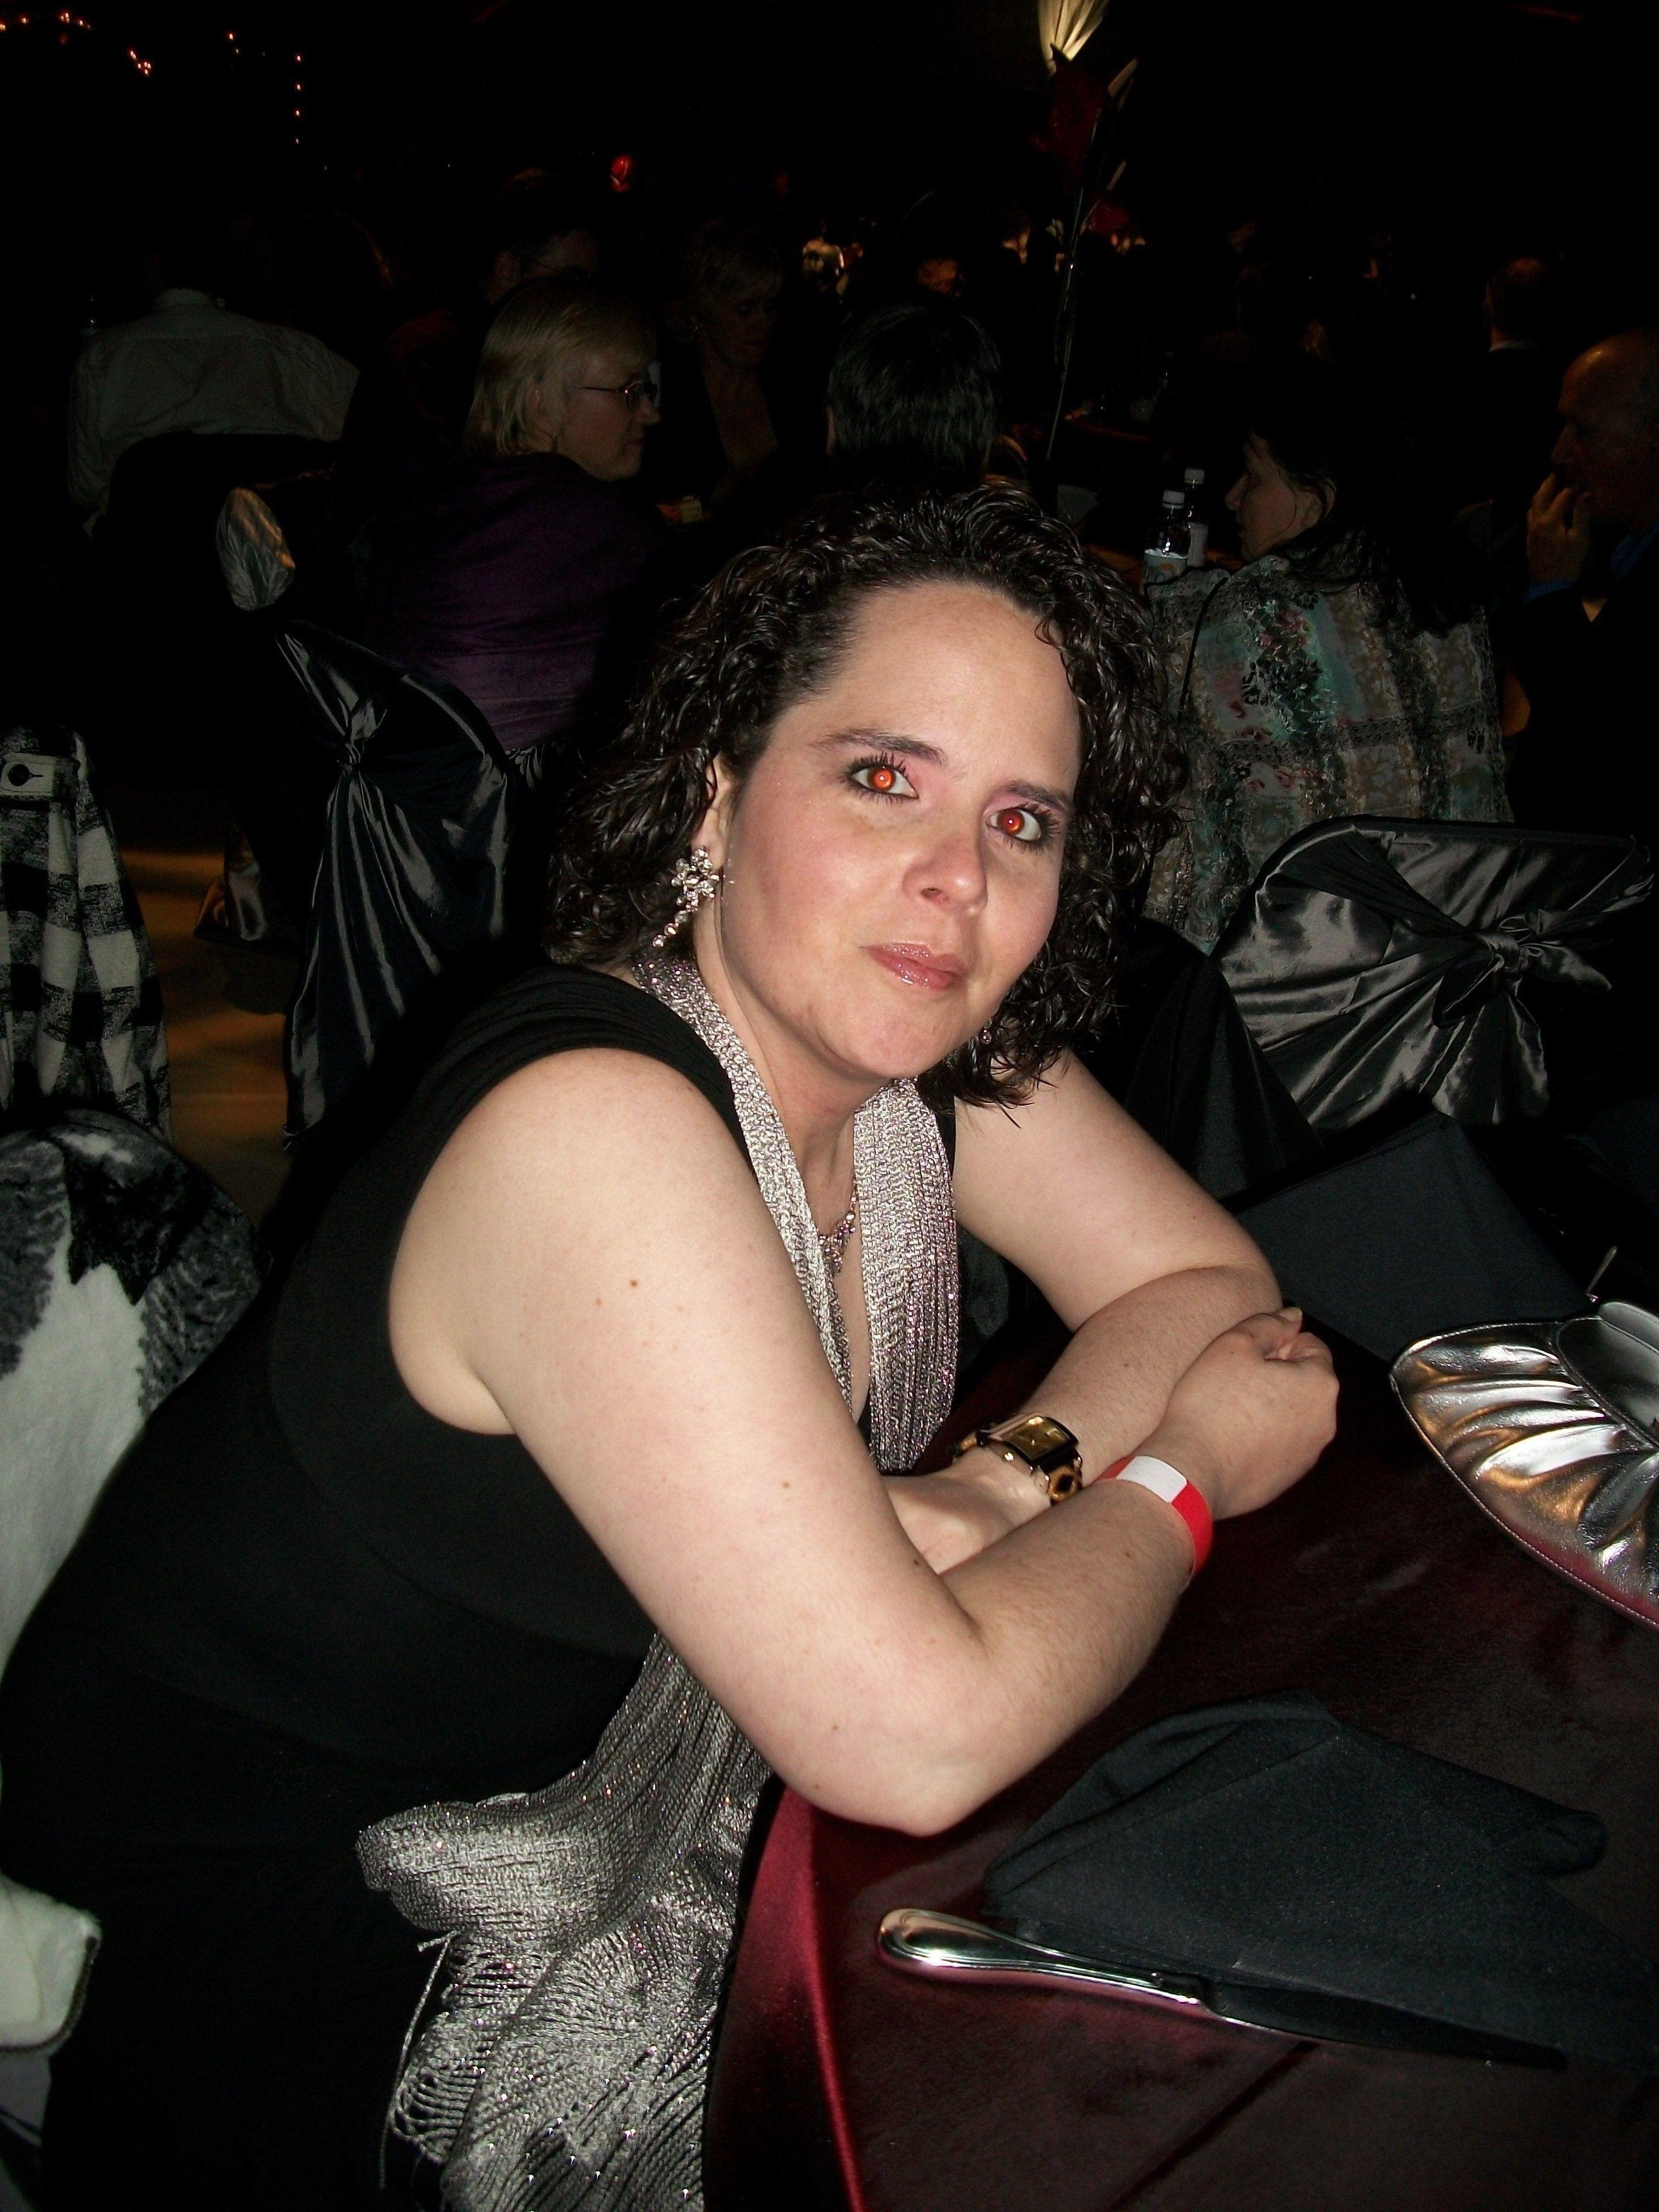 sooke mature singles I like to meet new friends and share some fun activities.